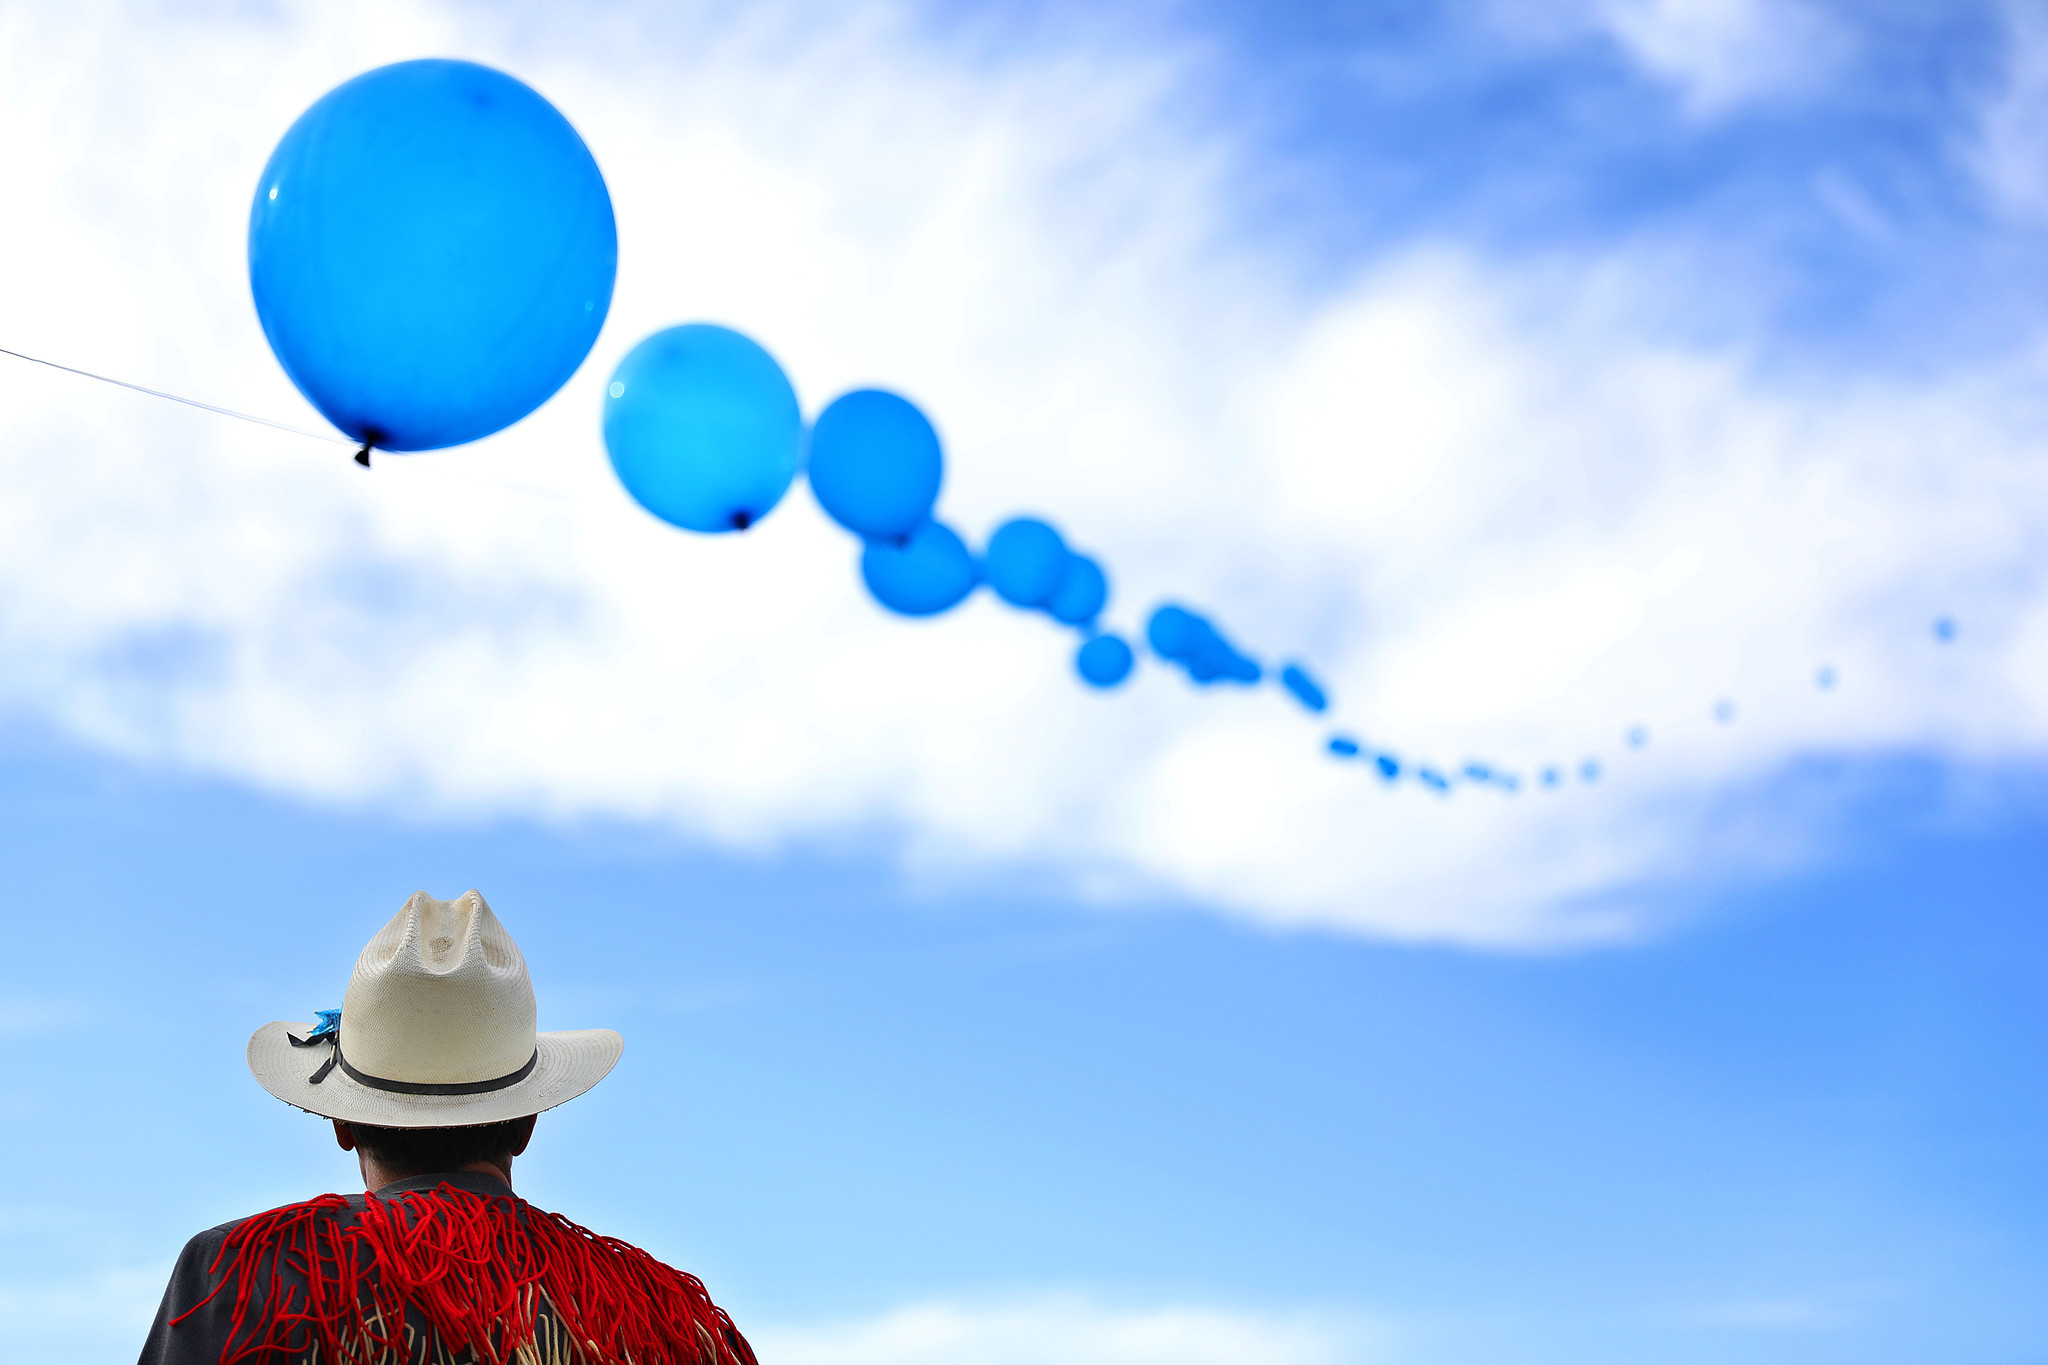 INDIO-CA-APRIL 20, 2018: Chris Wagganer, a crew member with the balloon chain, is photographed at Co